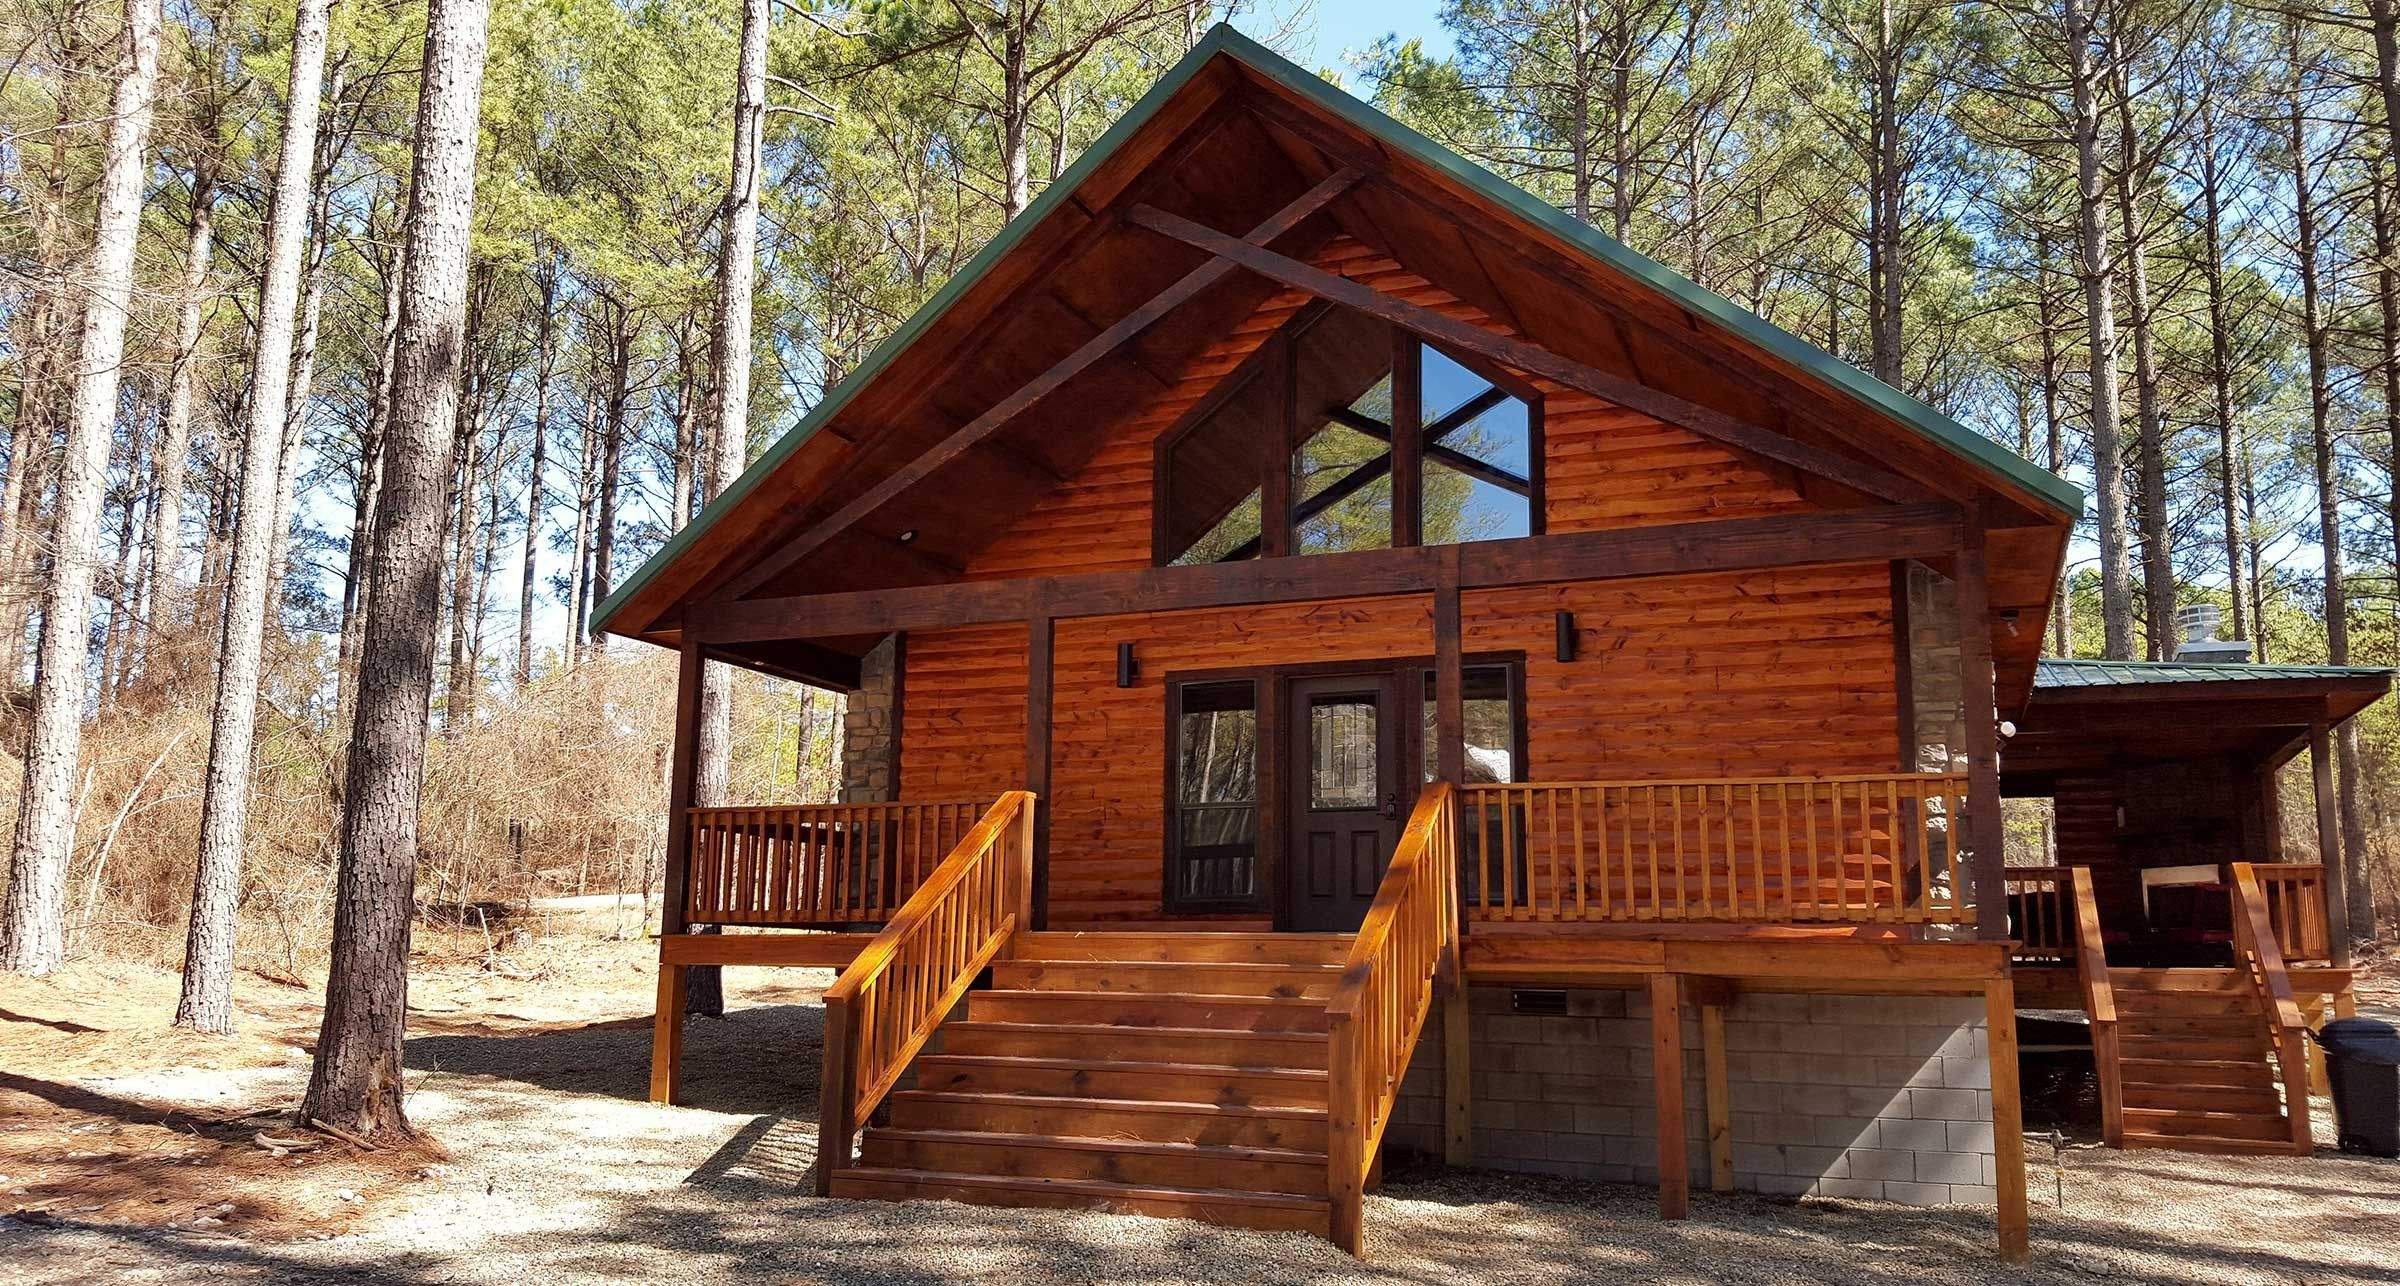 beavers rentals log new creek up people cabin getaway adventures winding to in this large windingcreeklodge a addition the is ridge luxury located secluded groups cabins bend perfect oak for lodge